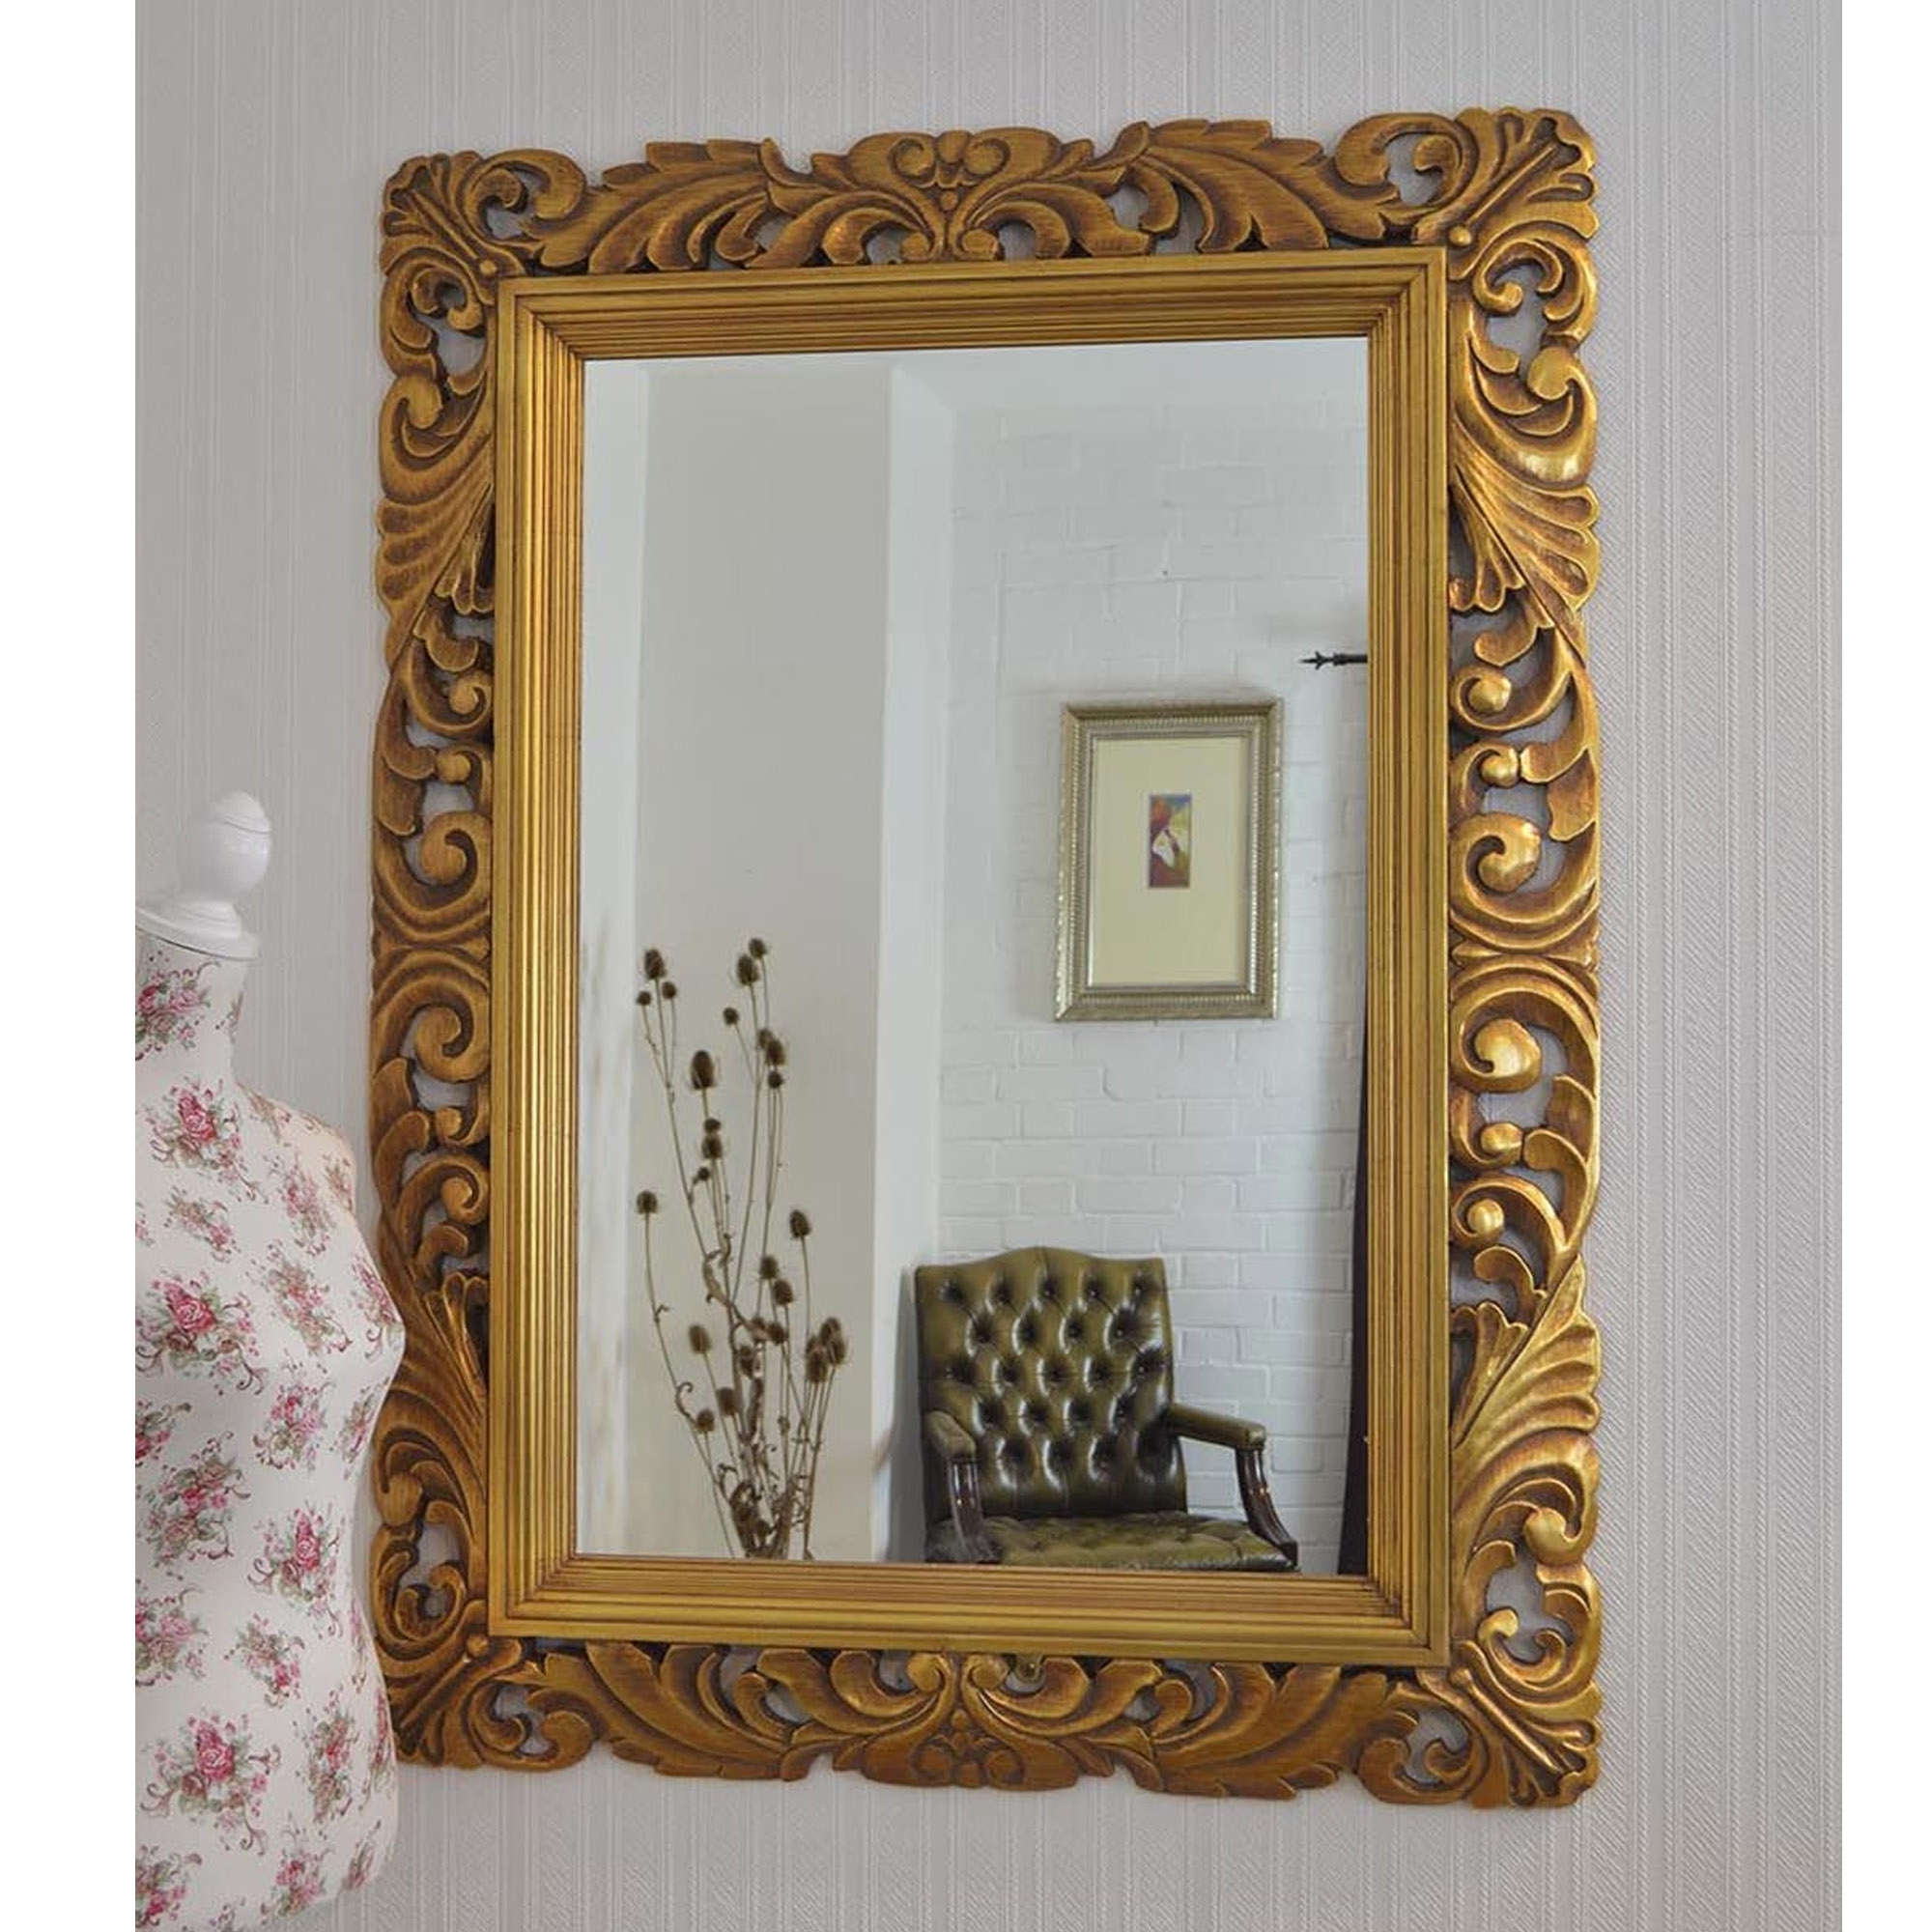 2019 Ornate Framed Gold Antique French Style Wall Mirror Regarding Gold Framed Wall Mirrors (View 4 of 20)